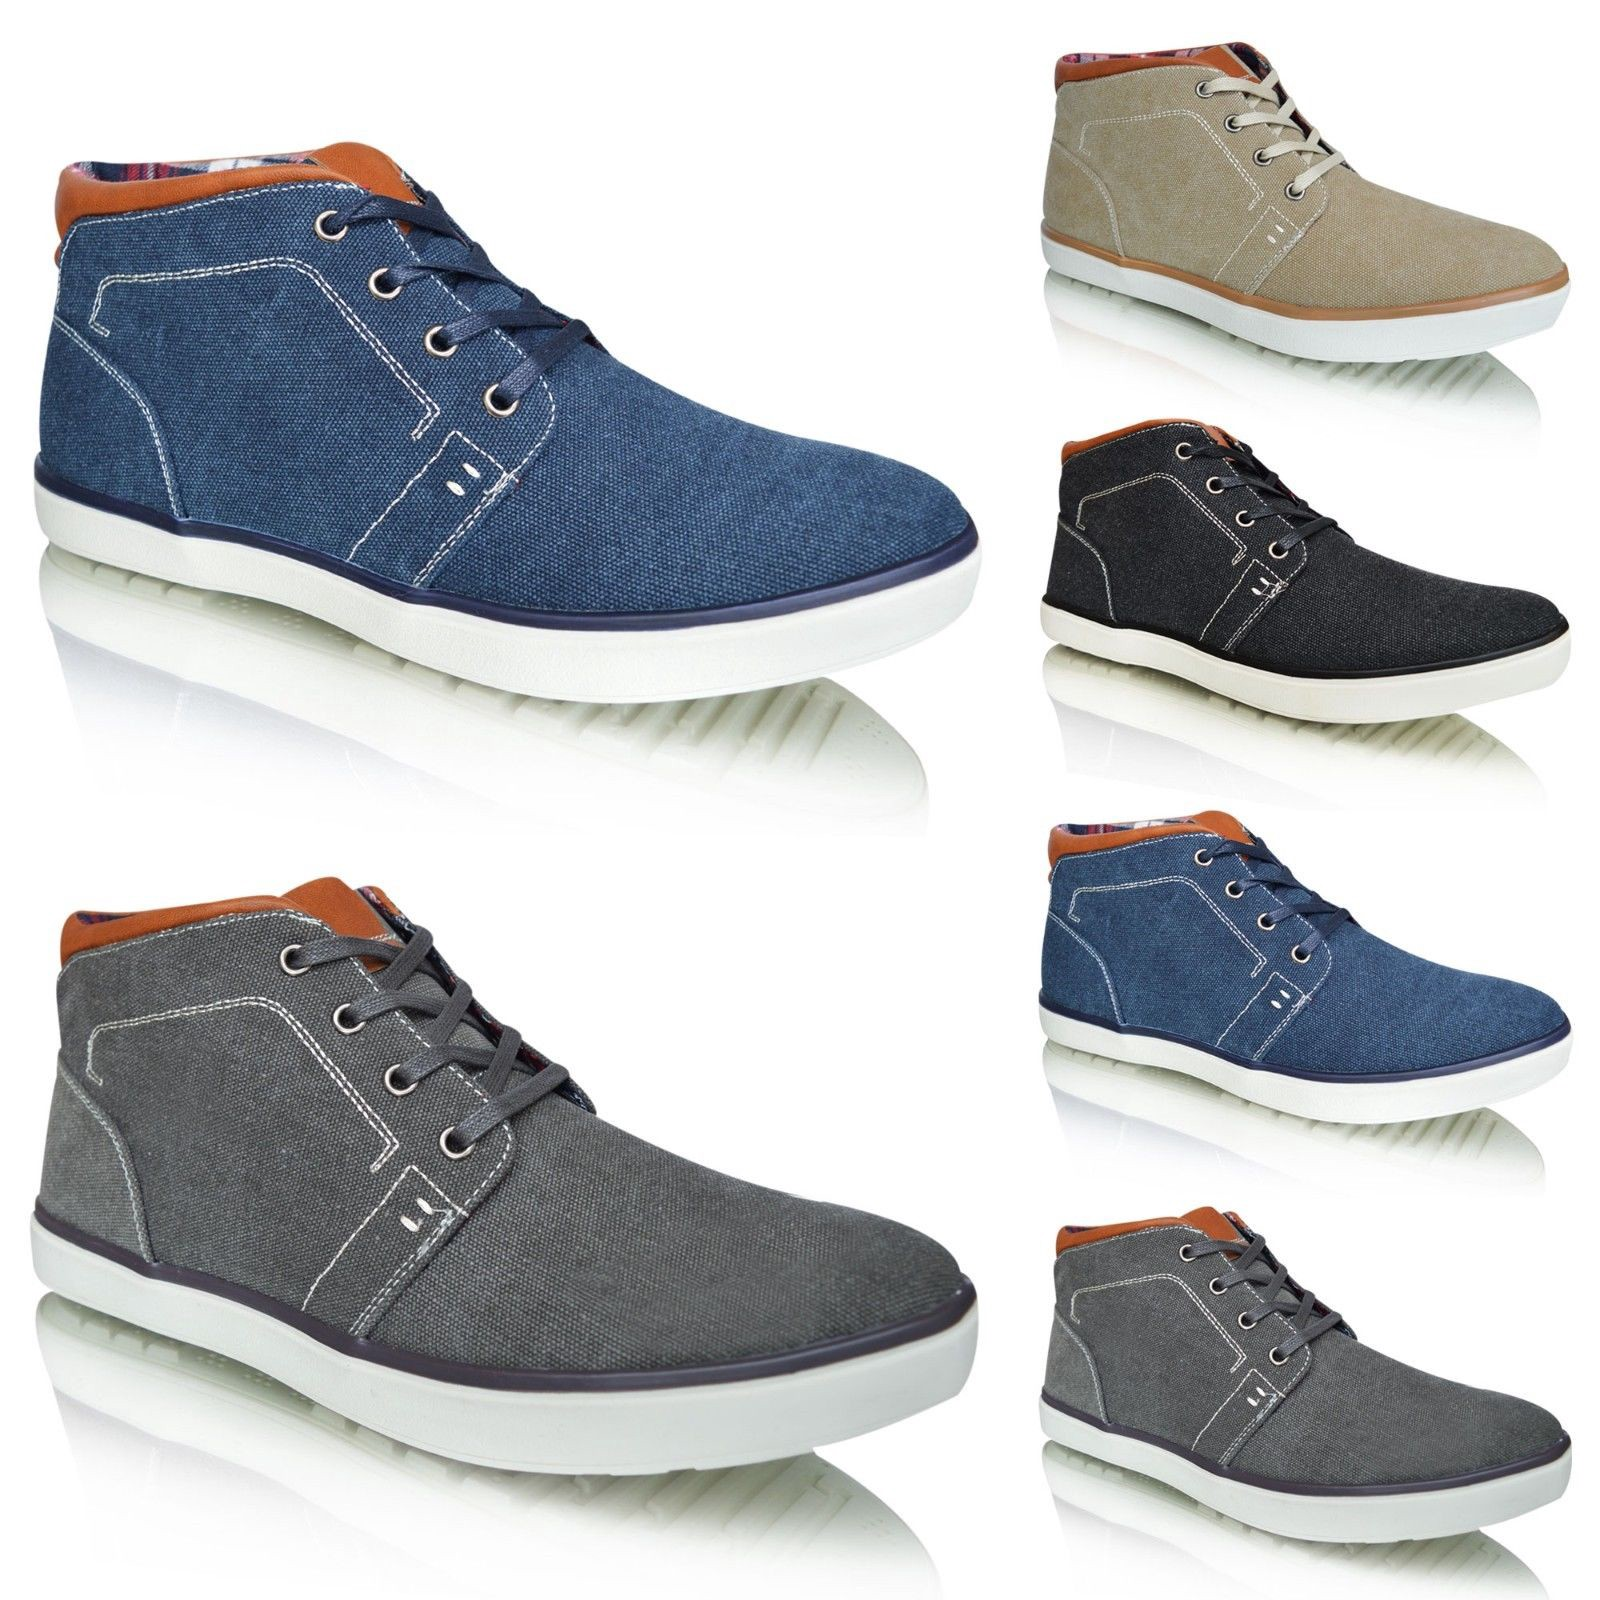 27c488c311e Xelay Mens Lace Up Plimsolls High Top Smart Casual Fashion Trainers Shoes  Boots